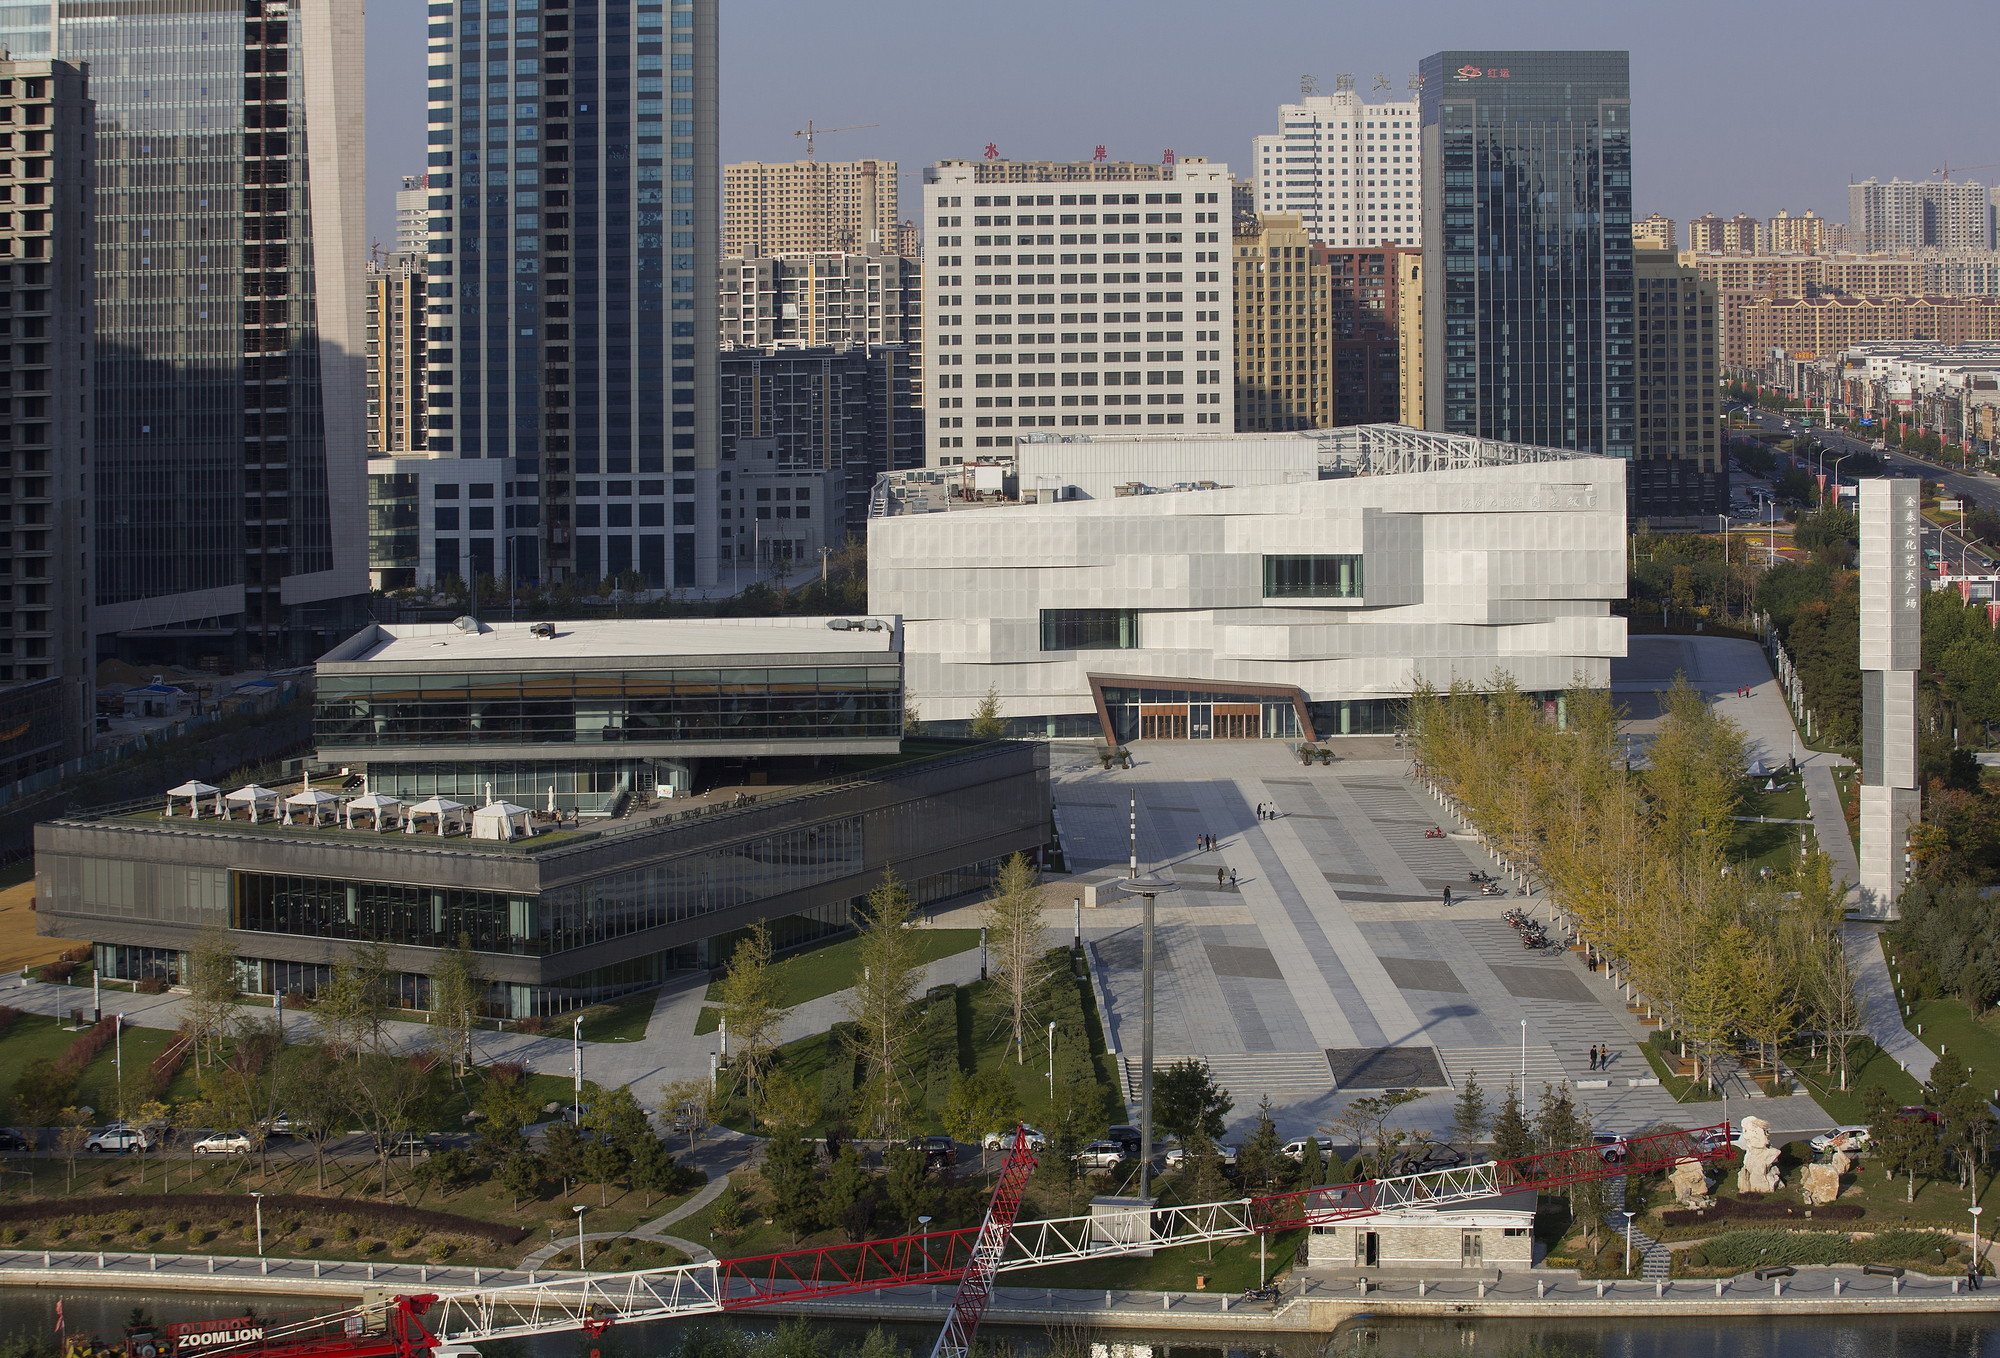 bayuquan library dsd archdaily courtesy of dsd